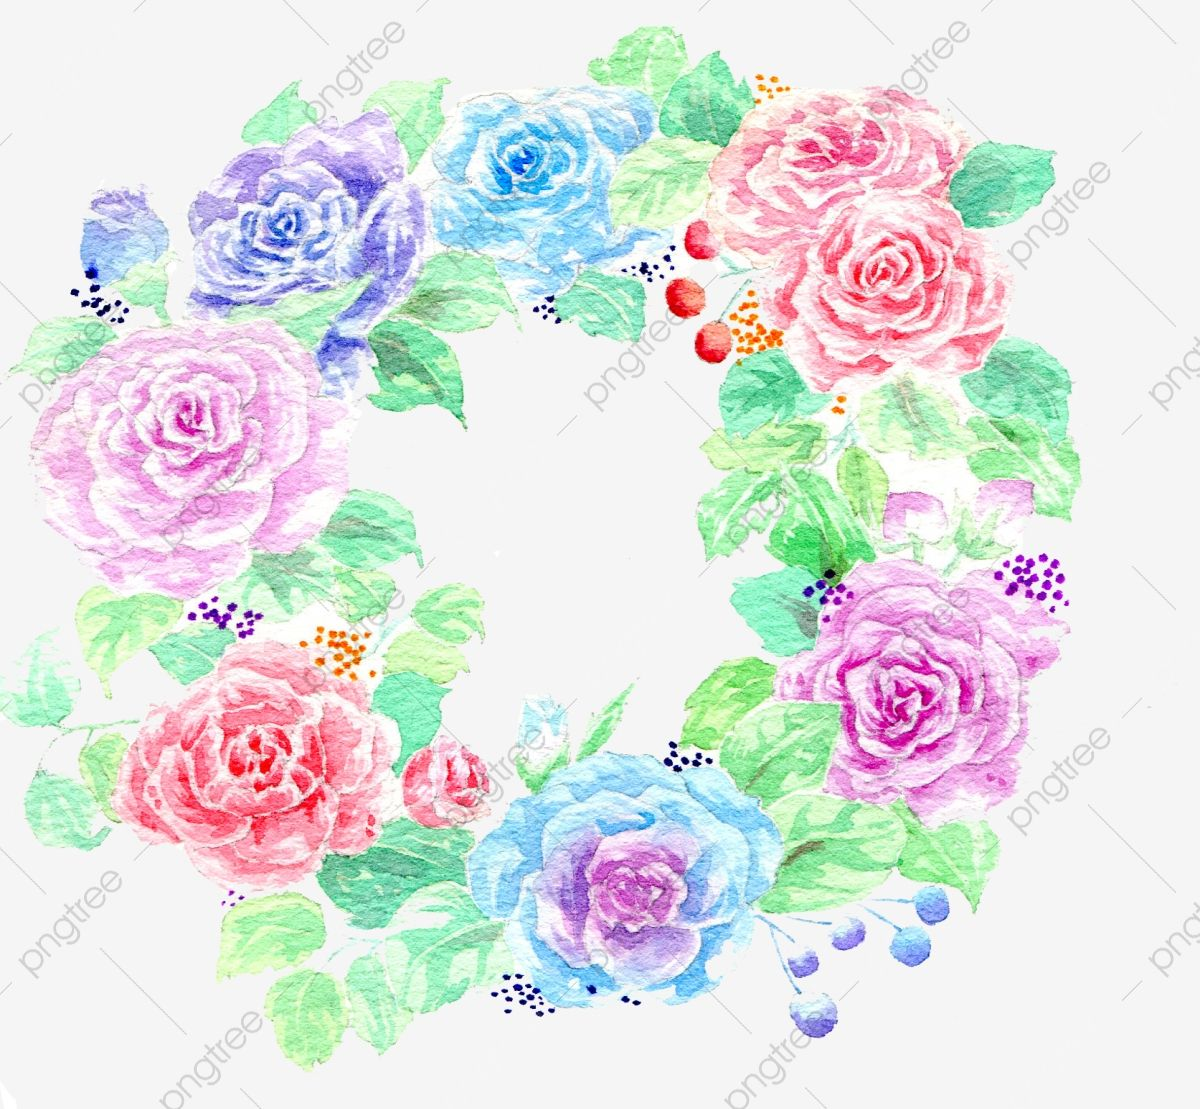 Photo of Garlands Of Flowers, Wreath, Flowers PNG Transparent Clipart Image and PSD File for Free Download